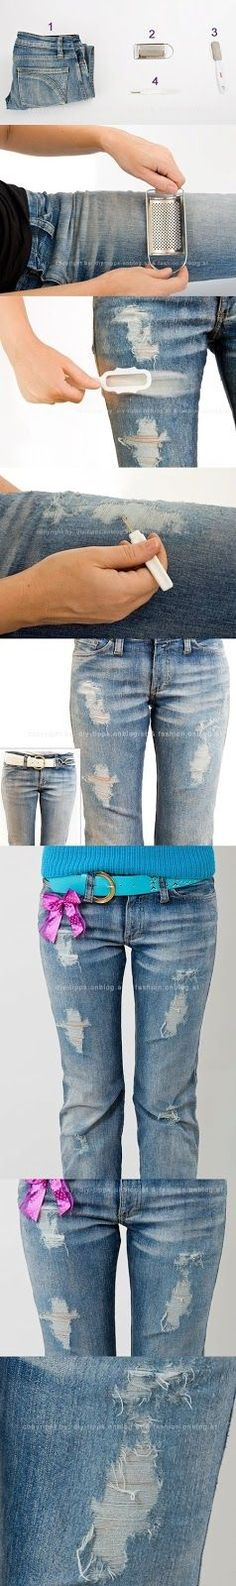 idea, fashion, craft, how to rip your jeans, diy holy jeans